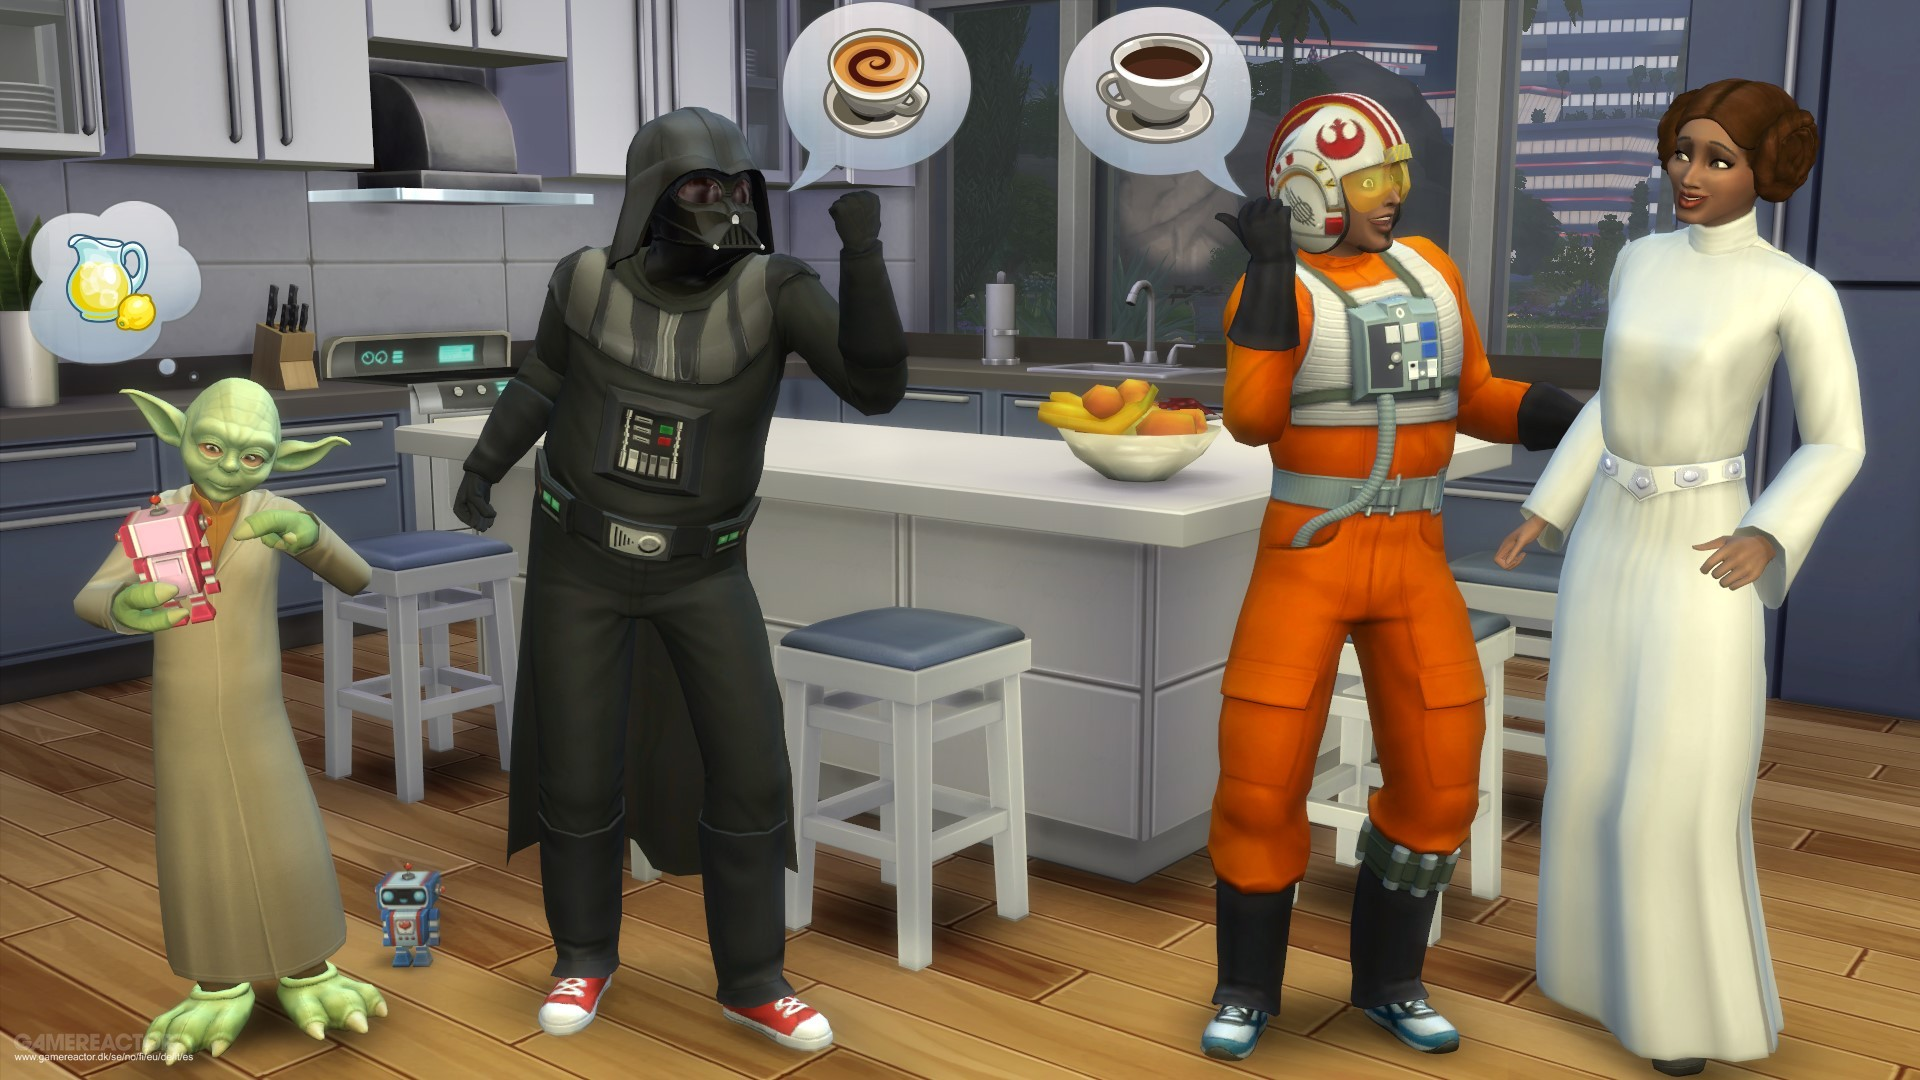 Pictures Of The Sims 4 Free October Update Serves Up Halloween